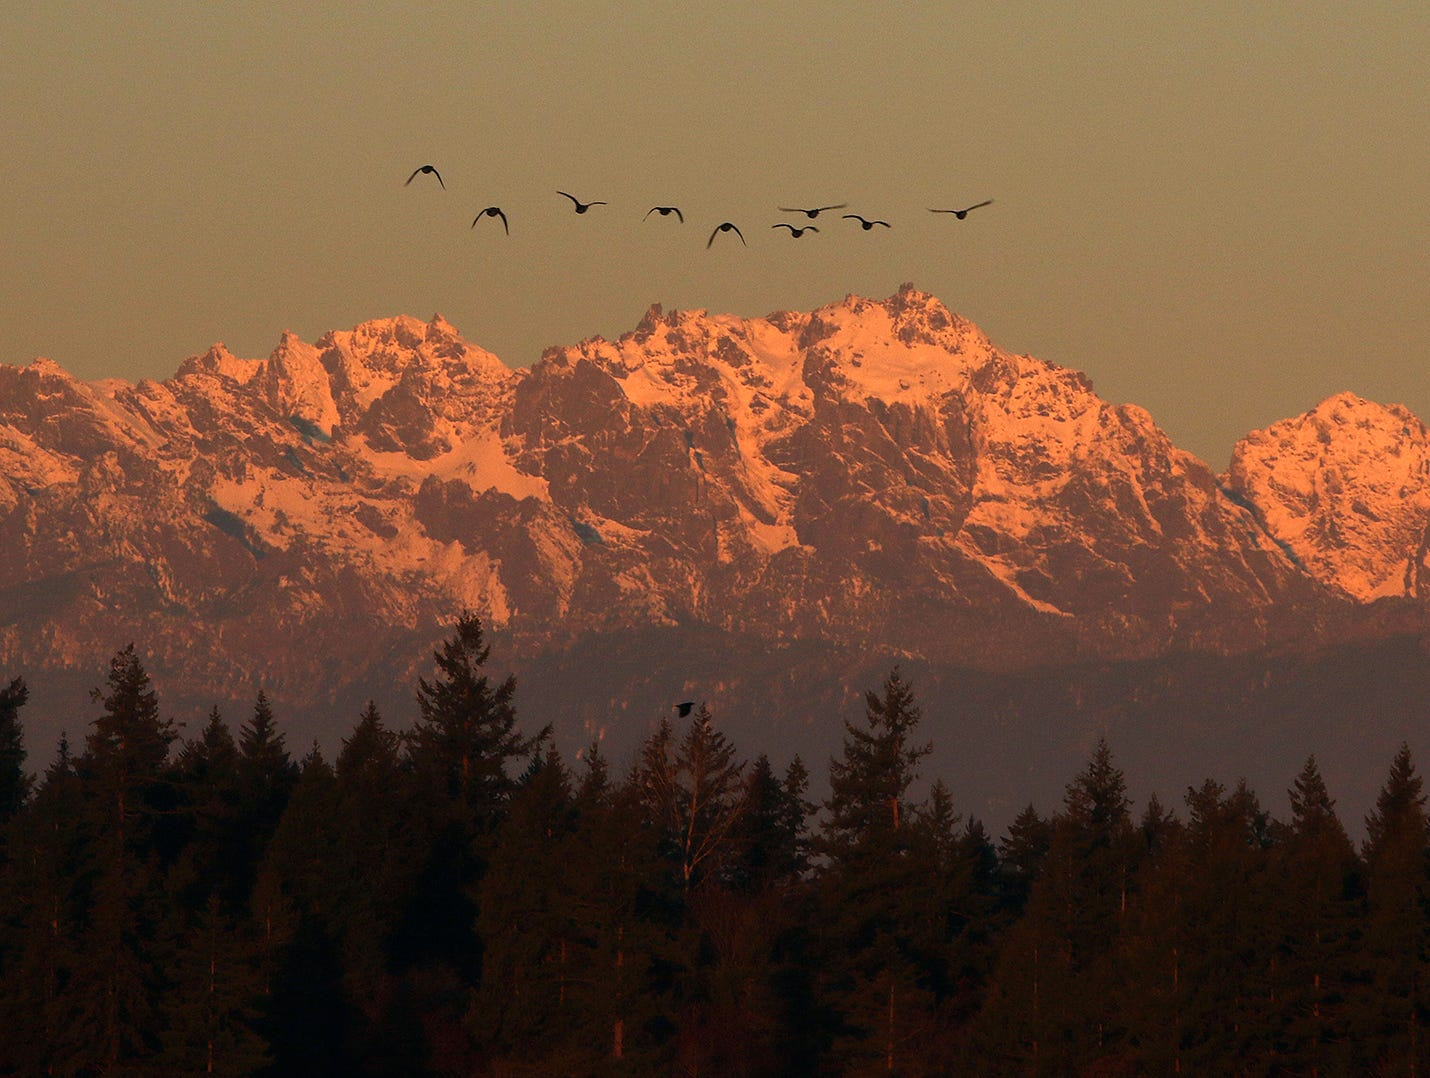 A flock of birds hovers over the Olympic Mountains at sunrise on December, 5, 2018, from Lions Park in Bremerton.